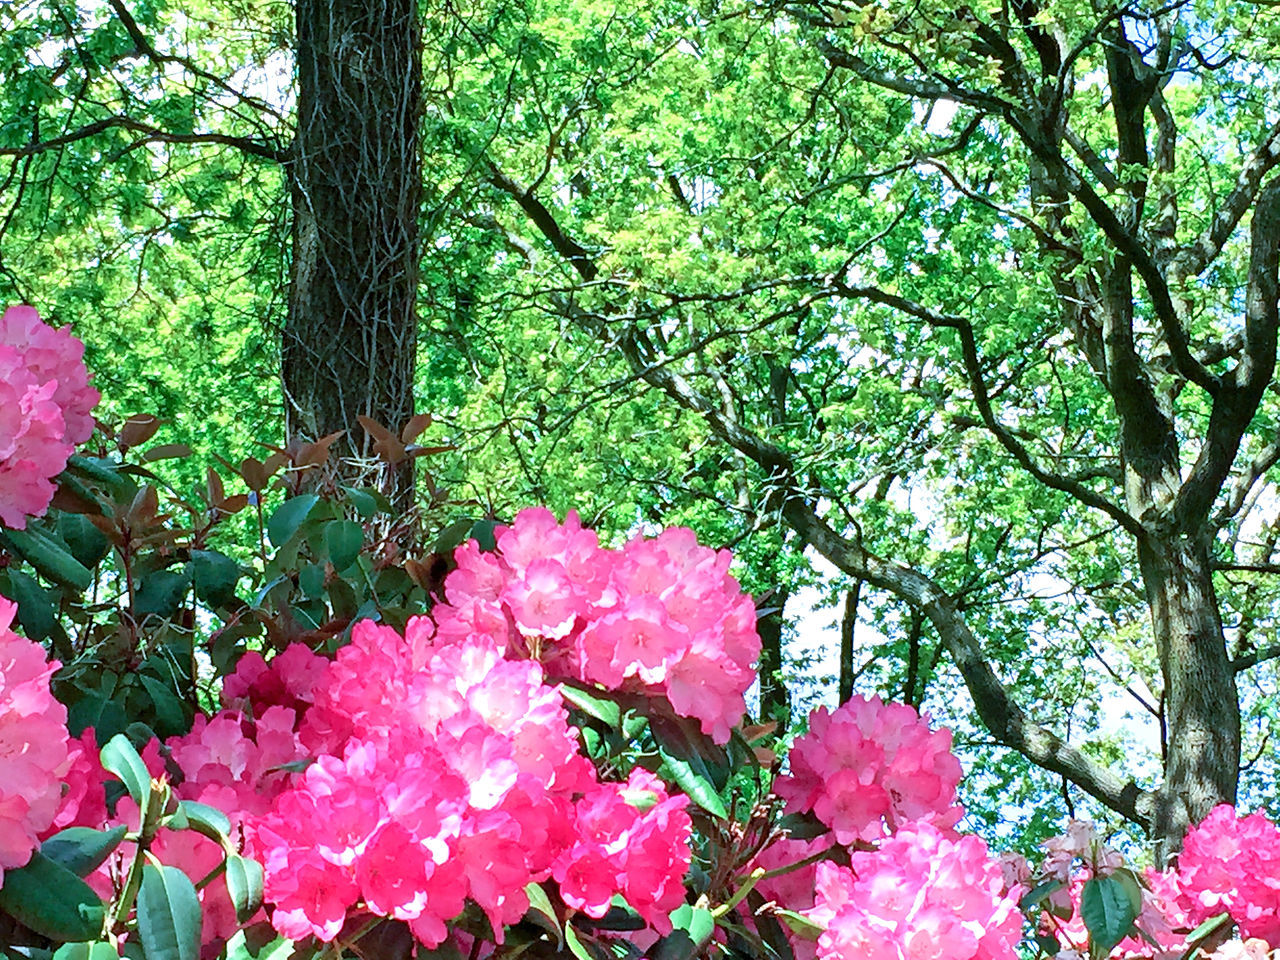 Rhododendron in the city park under spring Beauty In Nature Beauty In Nature Branch Bushes Colorful Day Flora Flower Fragility Freshness Grass Green Color Growth Images Nature No People Outdoors Park Park - Man Made Space Petal Pink Color Rhododendron Stock Image Tree Tree